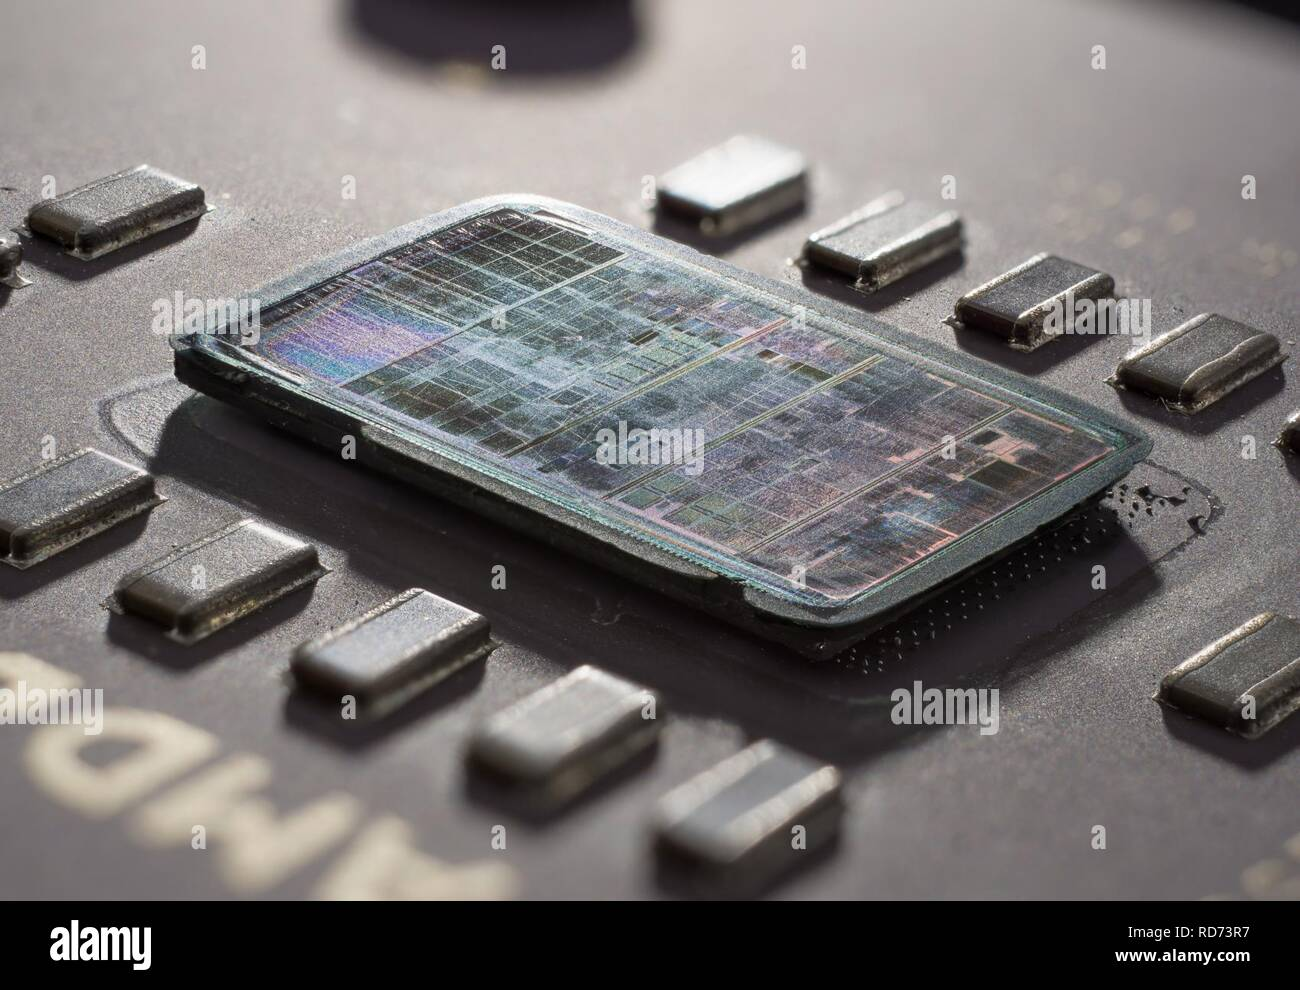 Amd Athlon K7 Thunderbird A0900amt3b Affa 0031rpbw Stack Stock Photo Alamy